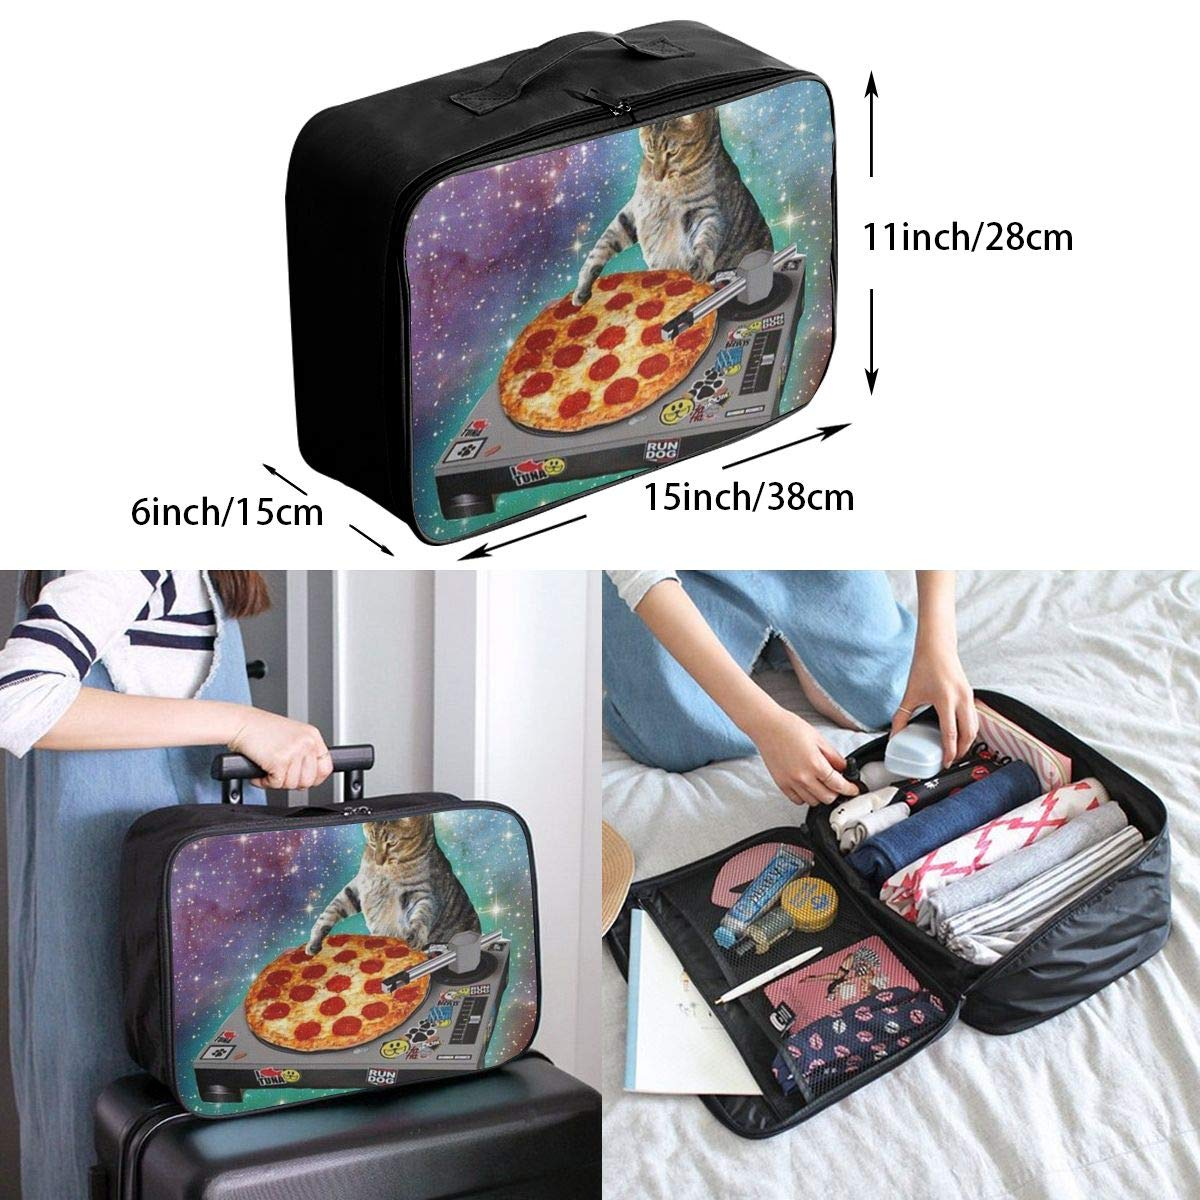 ADGAI Cat Take Pizza Canvas Travel Weekender Bag,Fashion Custom Lightweight Large Capacity Portable Luggage Bag,Suitcase Trolley Bag